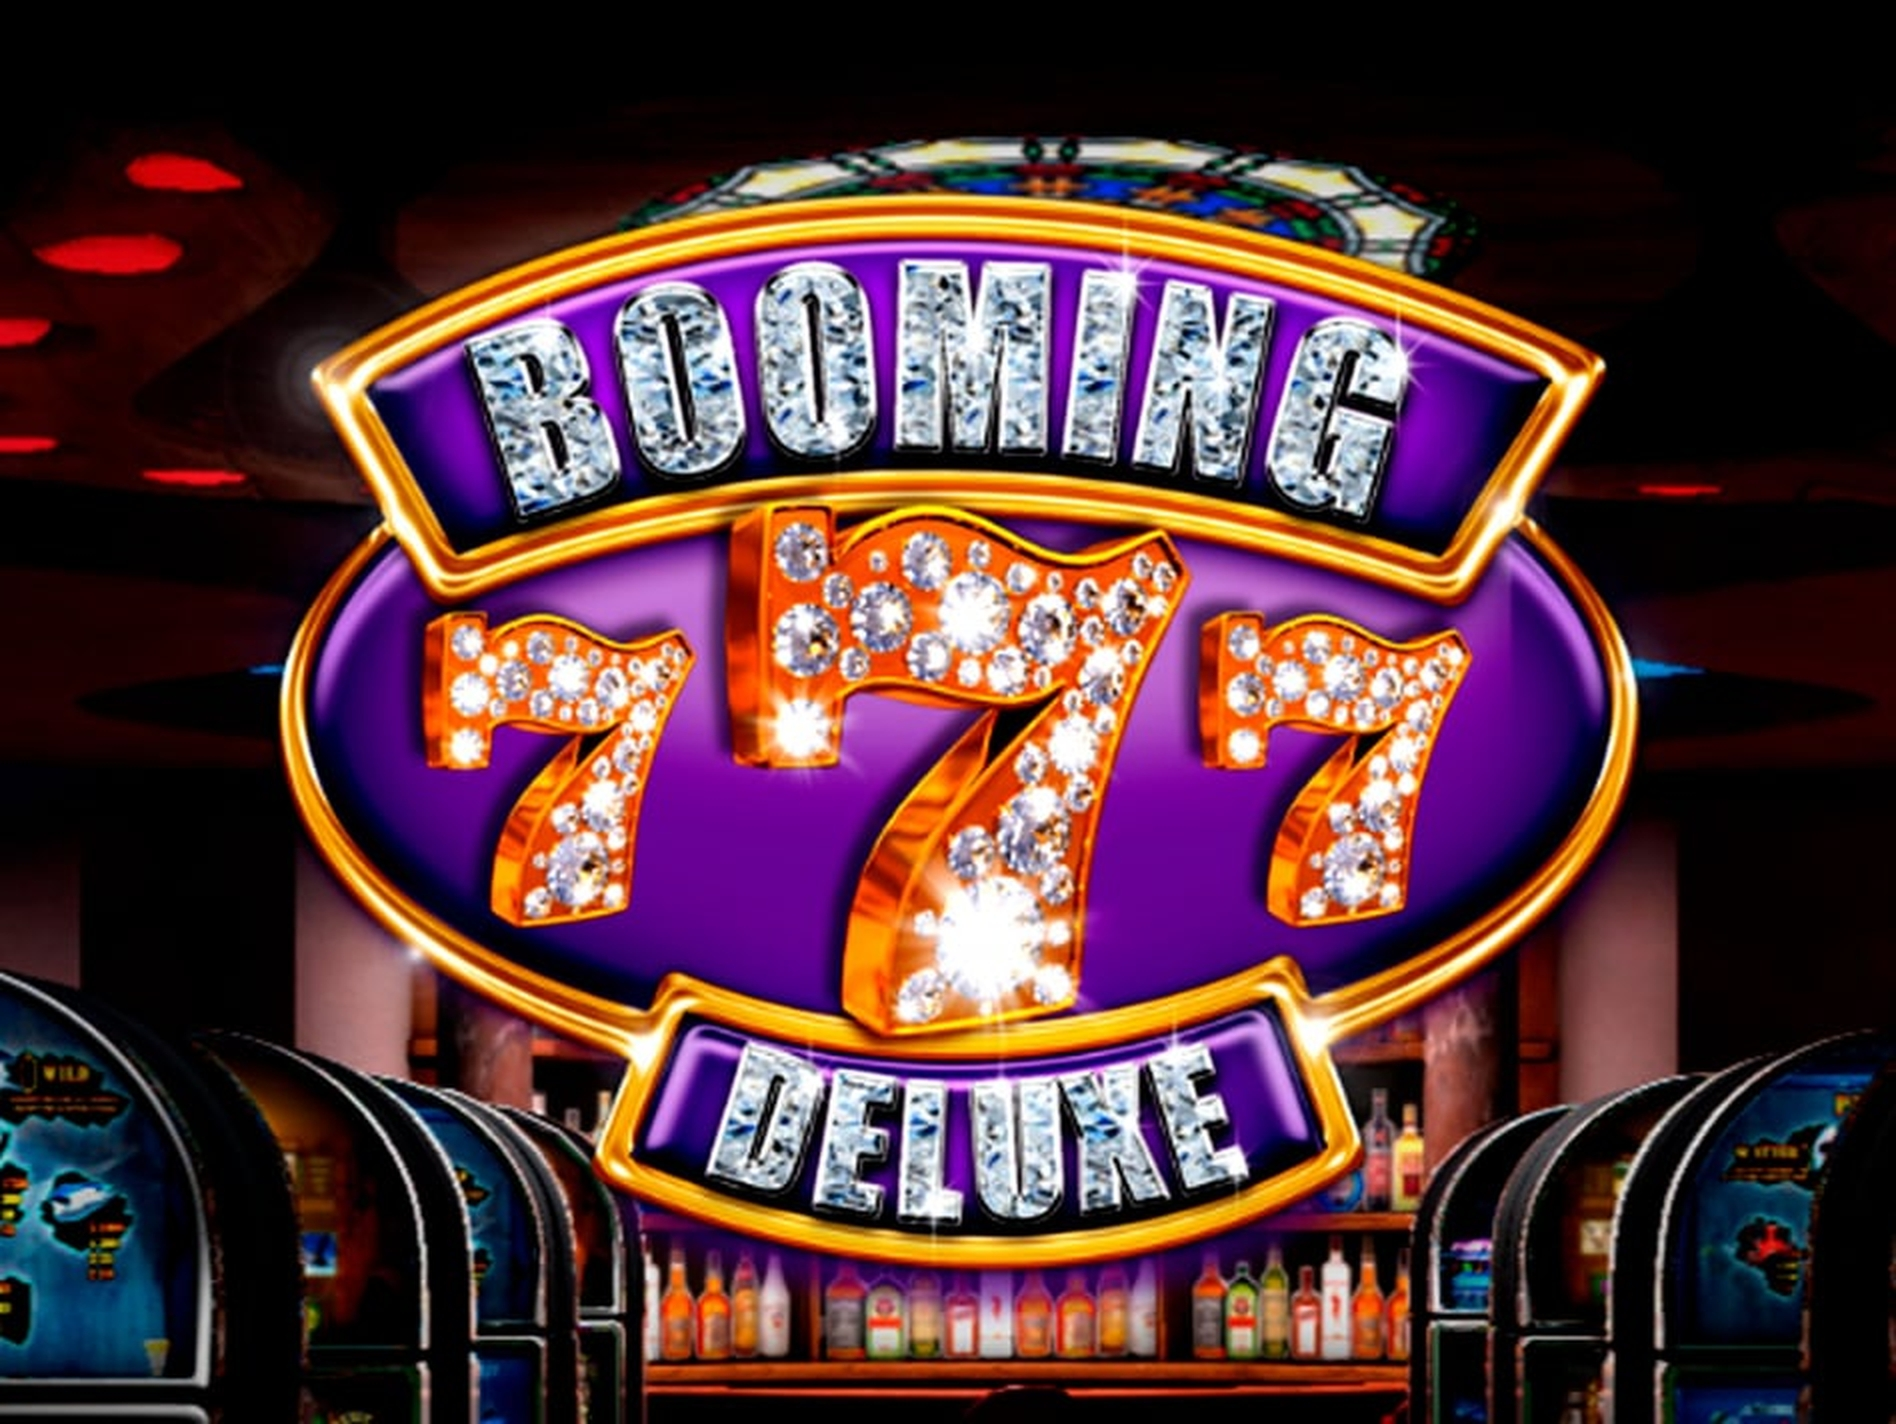 The Booming Seven Online Slot Demo Game by Booming Games